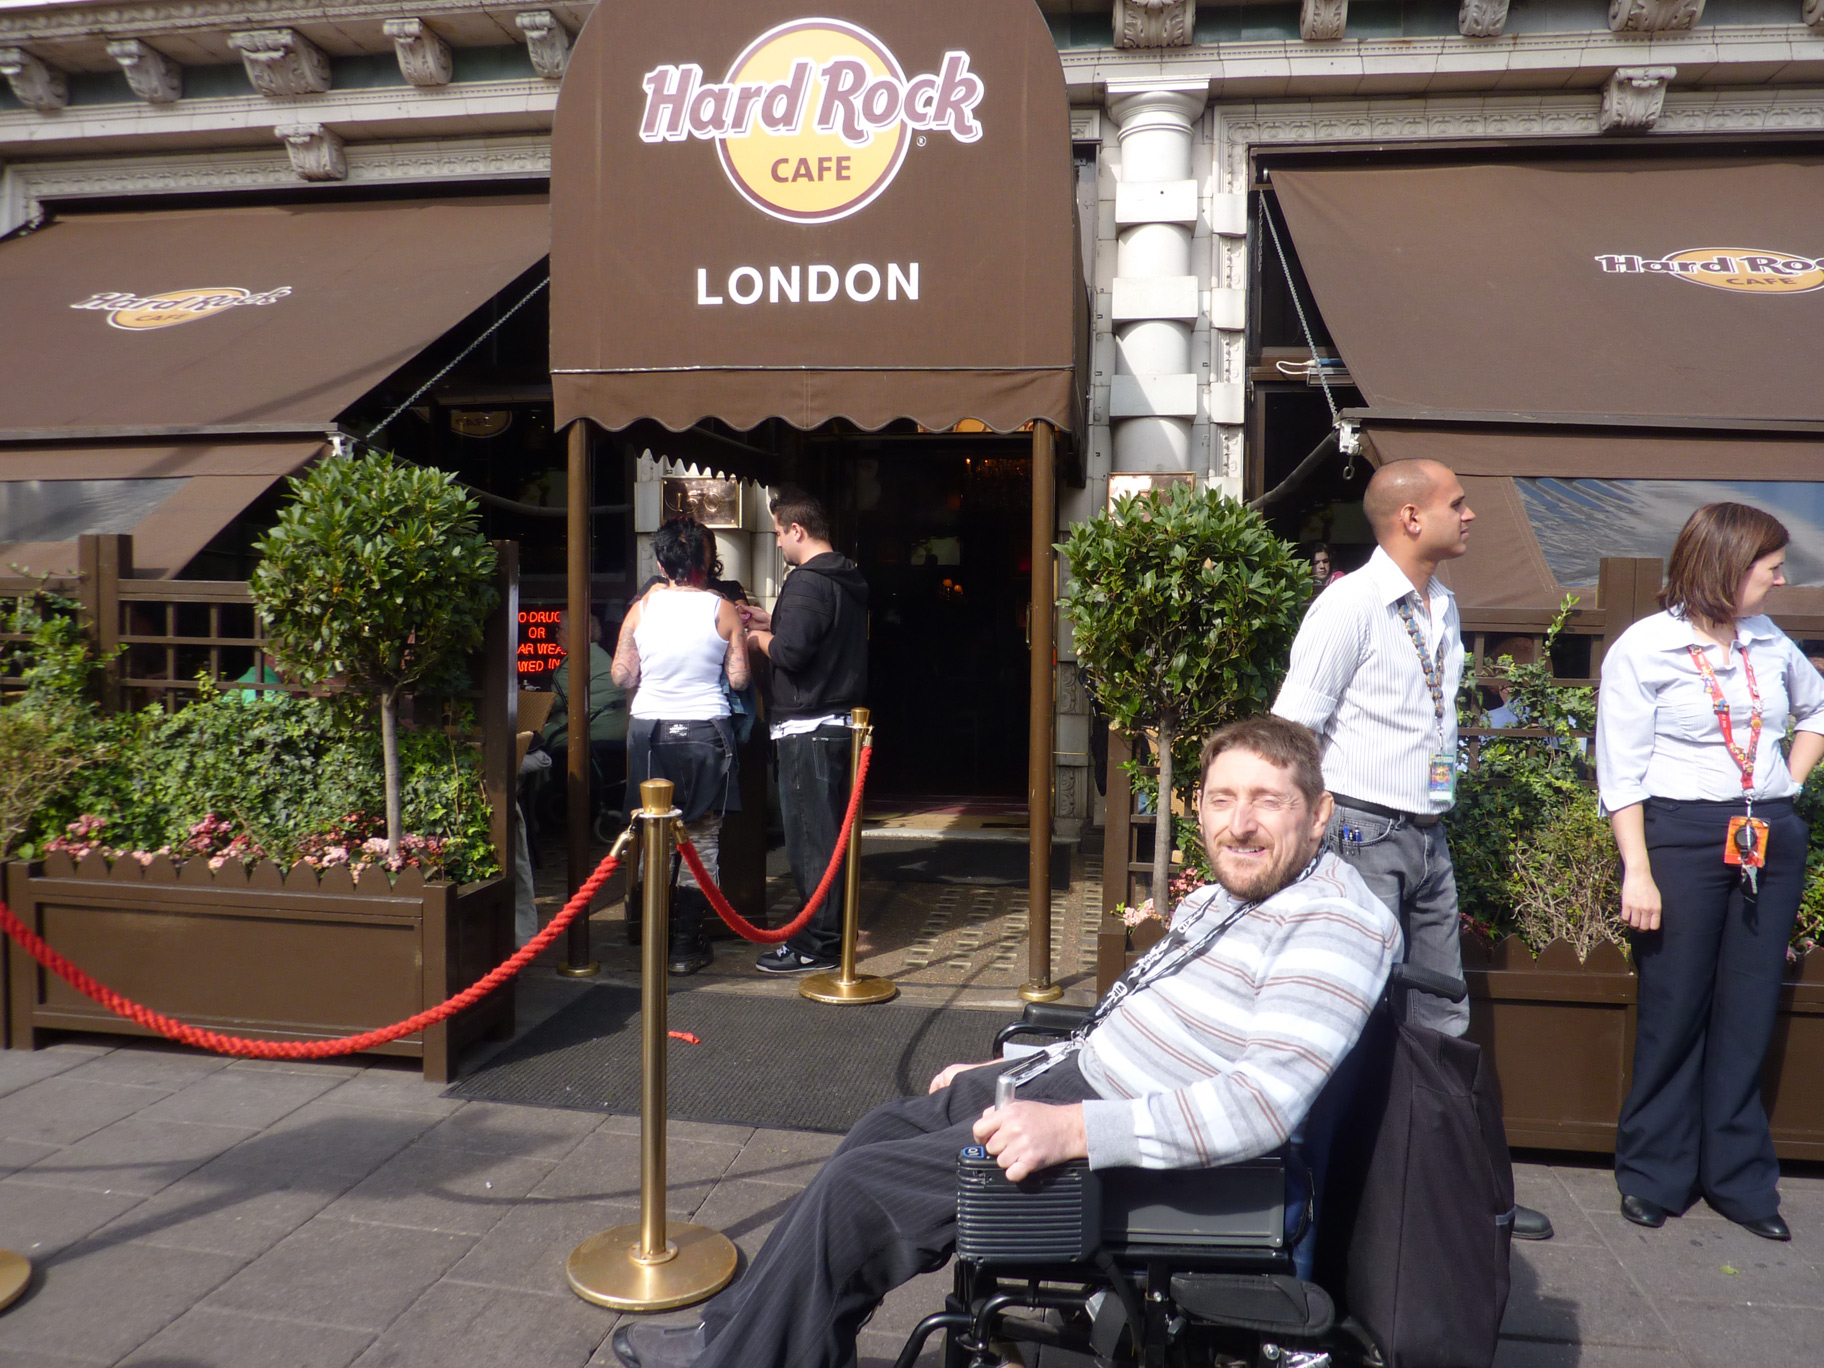 Mark's Music Circus = Disability Guide for the Hard Rock